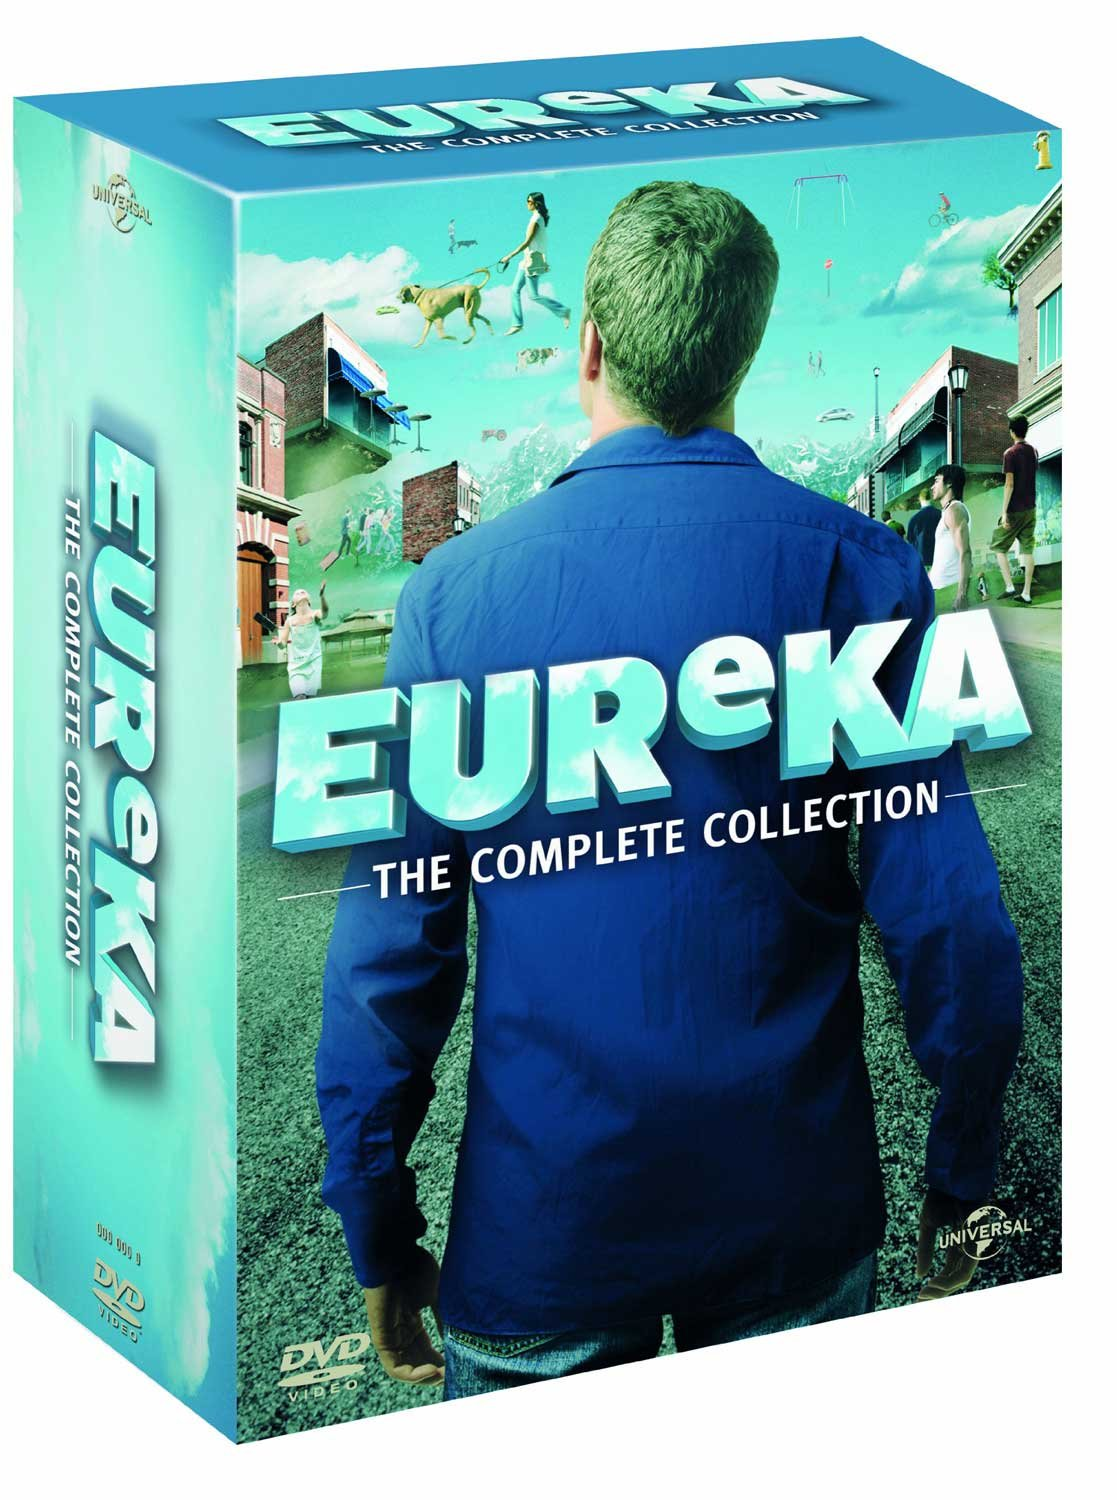 A Town Called Eureka - Complete Collection (Seasons 1-5) - 23-DVD Box Set ( Eureka ) ( Eureka - Complete Seasons One to Five ) [ NON-USA FORMAT, PAL, Reg.2.4 Import - United Kingdom ] by Universal